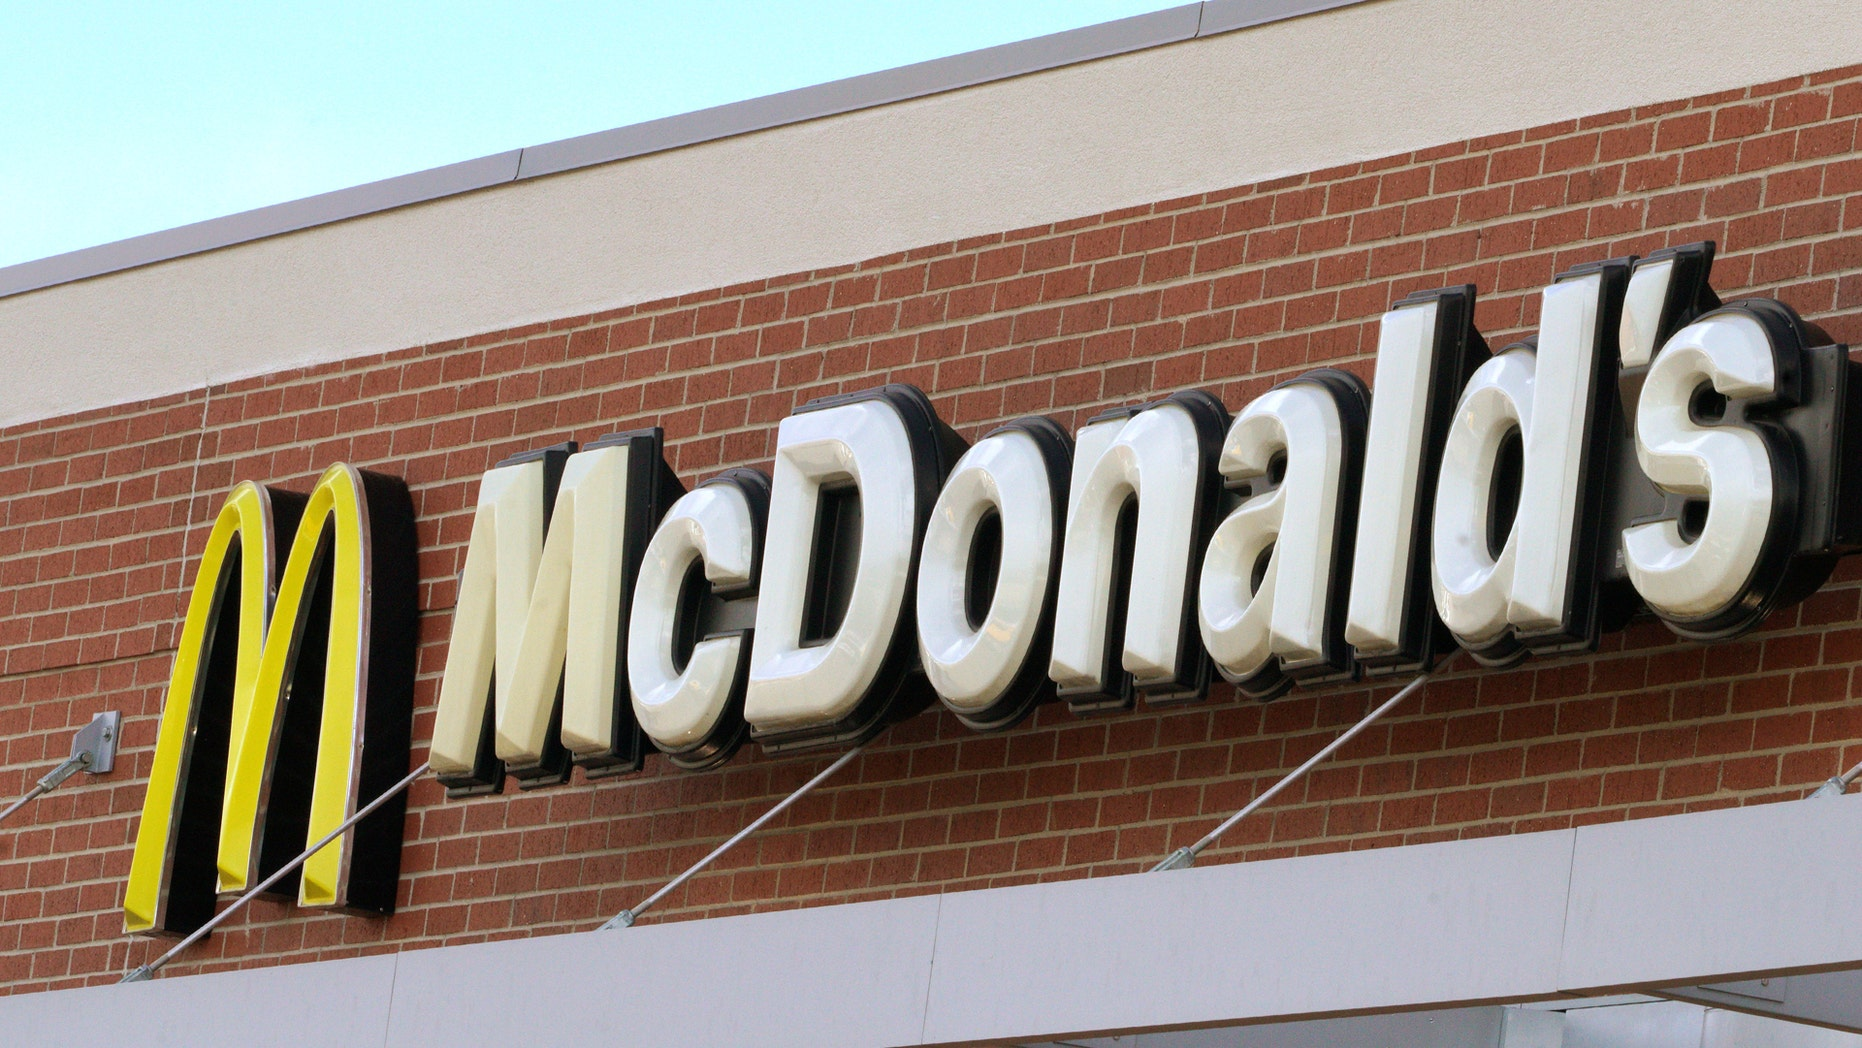 An 8-year-old boy drove himself to McDonald's while his parents were sleeping, police said.